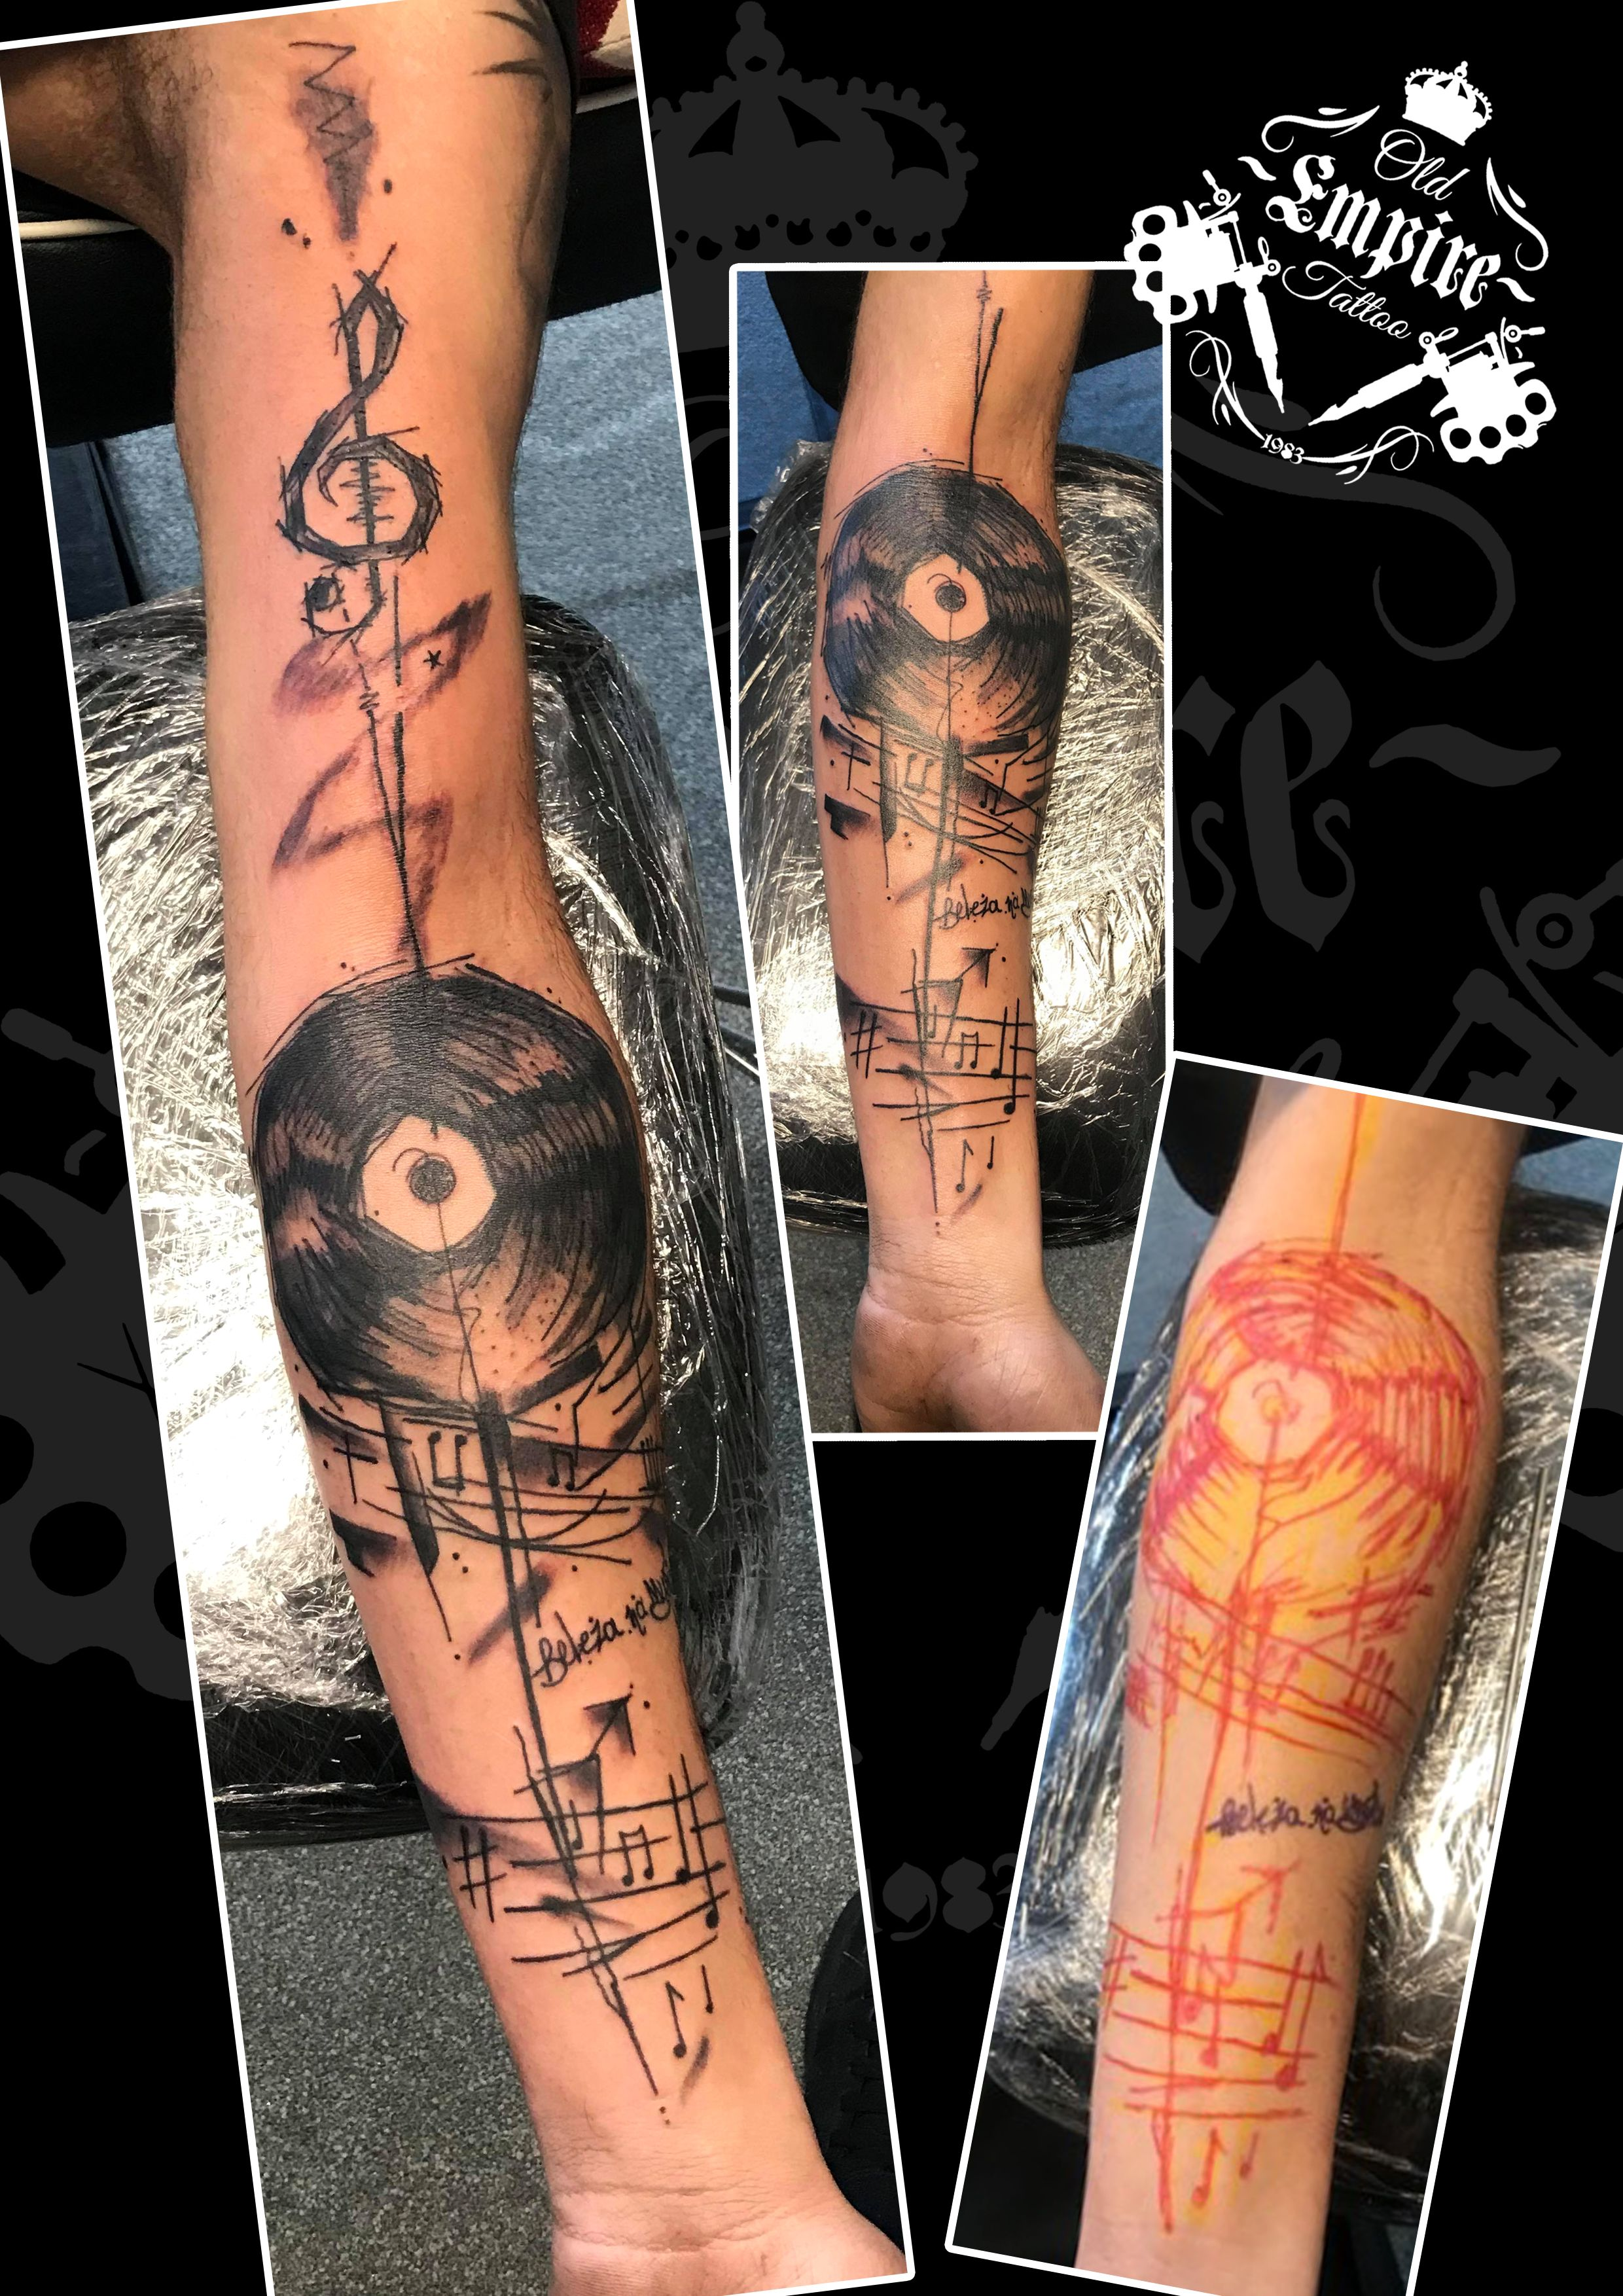 Belezanamusica Beautyinmusic Had Fun Doing This Cool Freehand